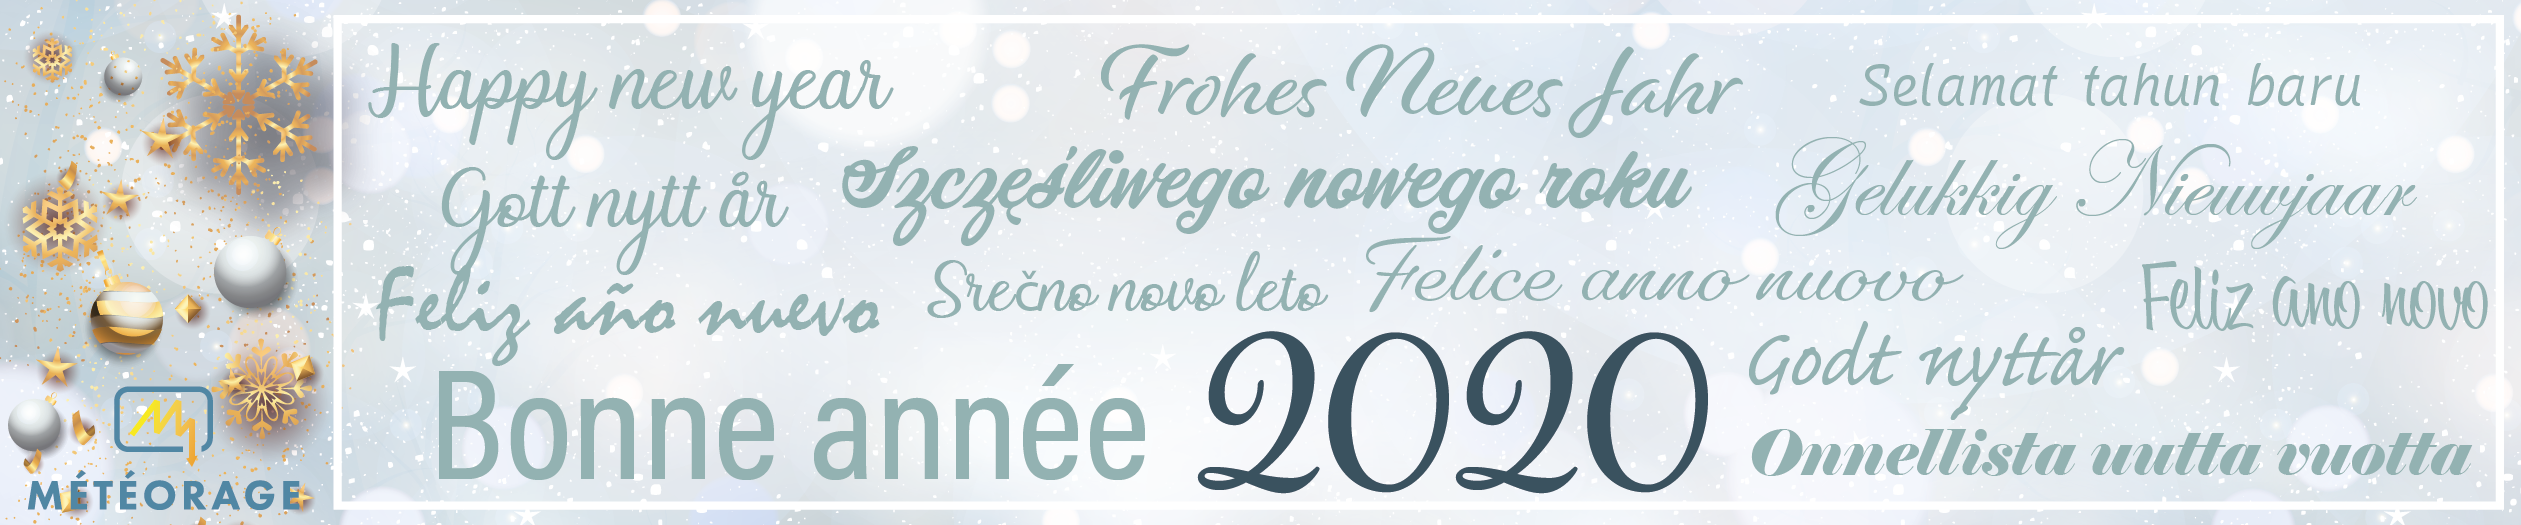 Meteorage wishes you a happy new year 2020